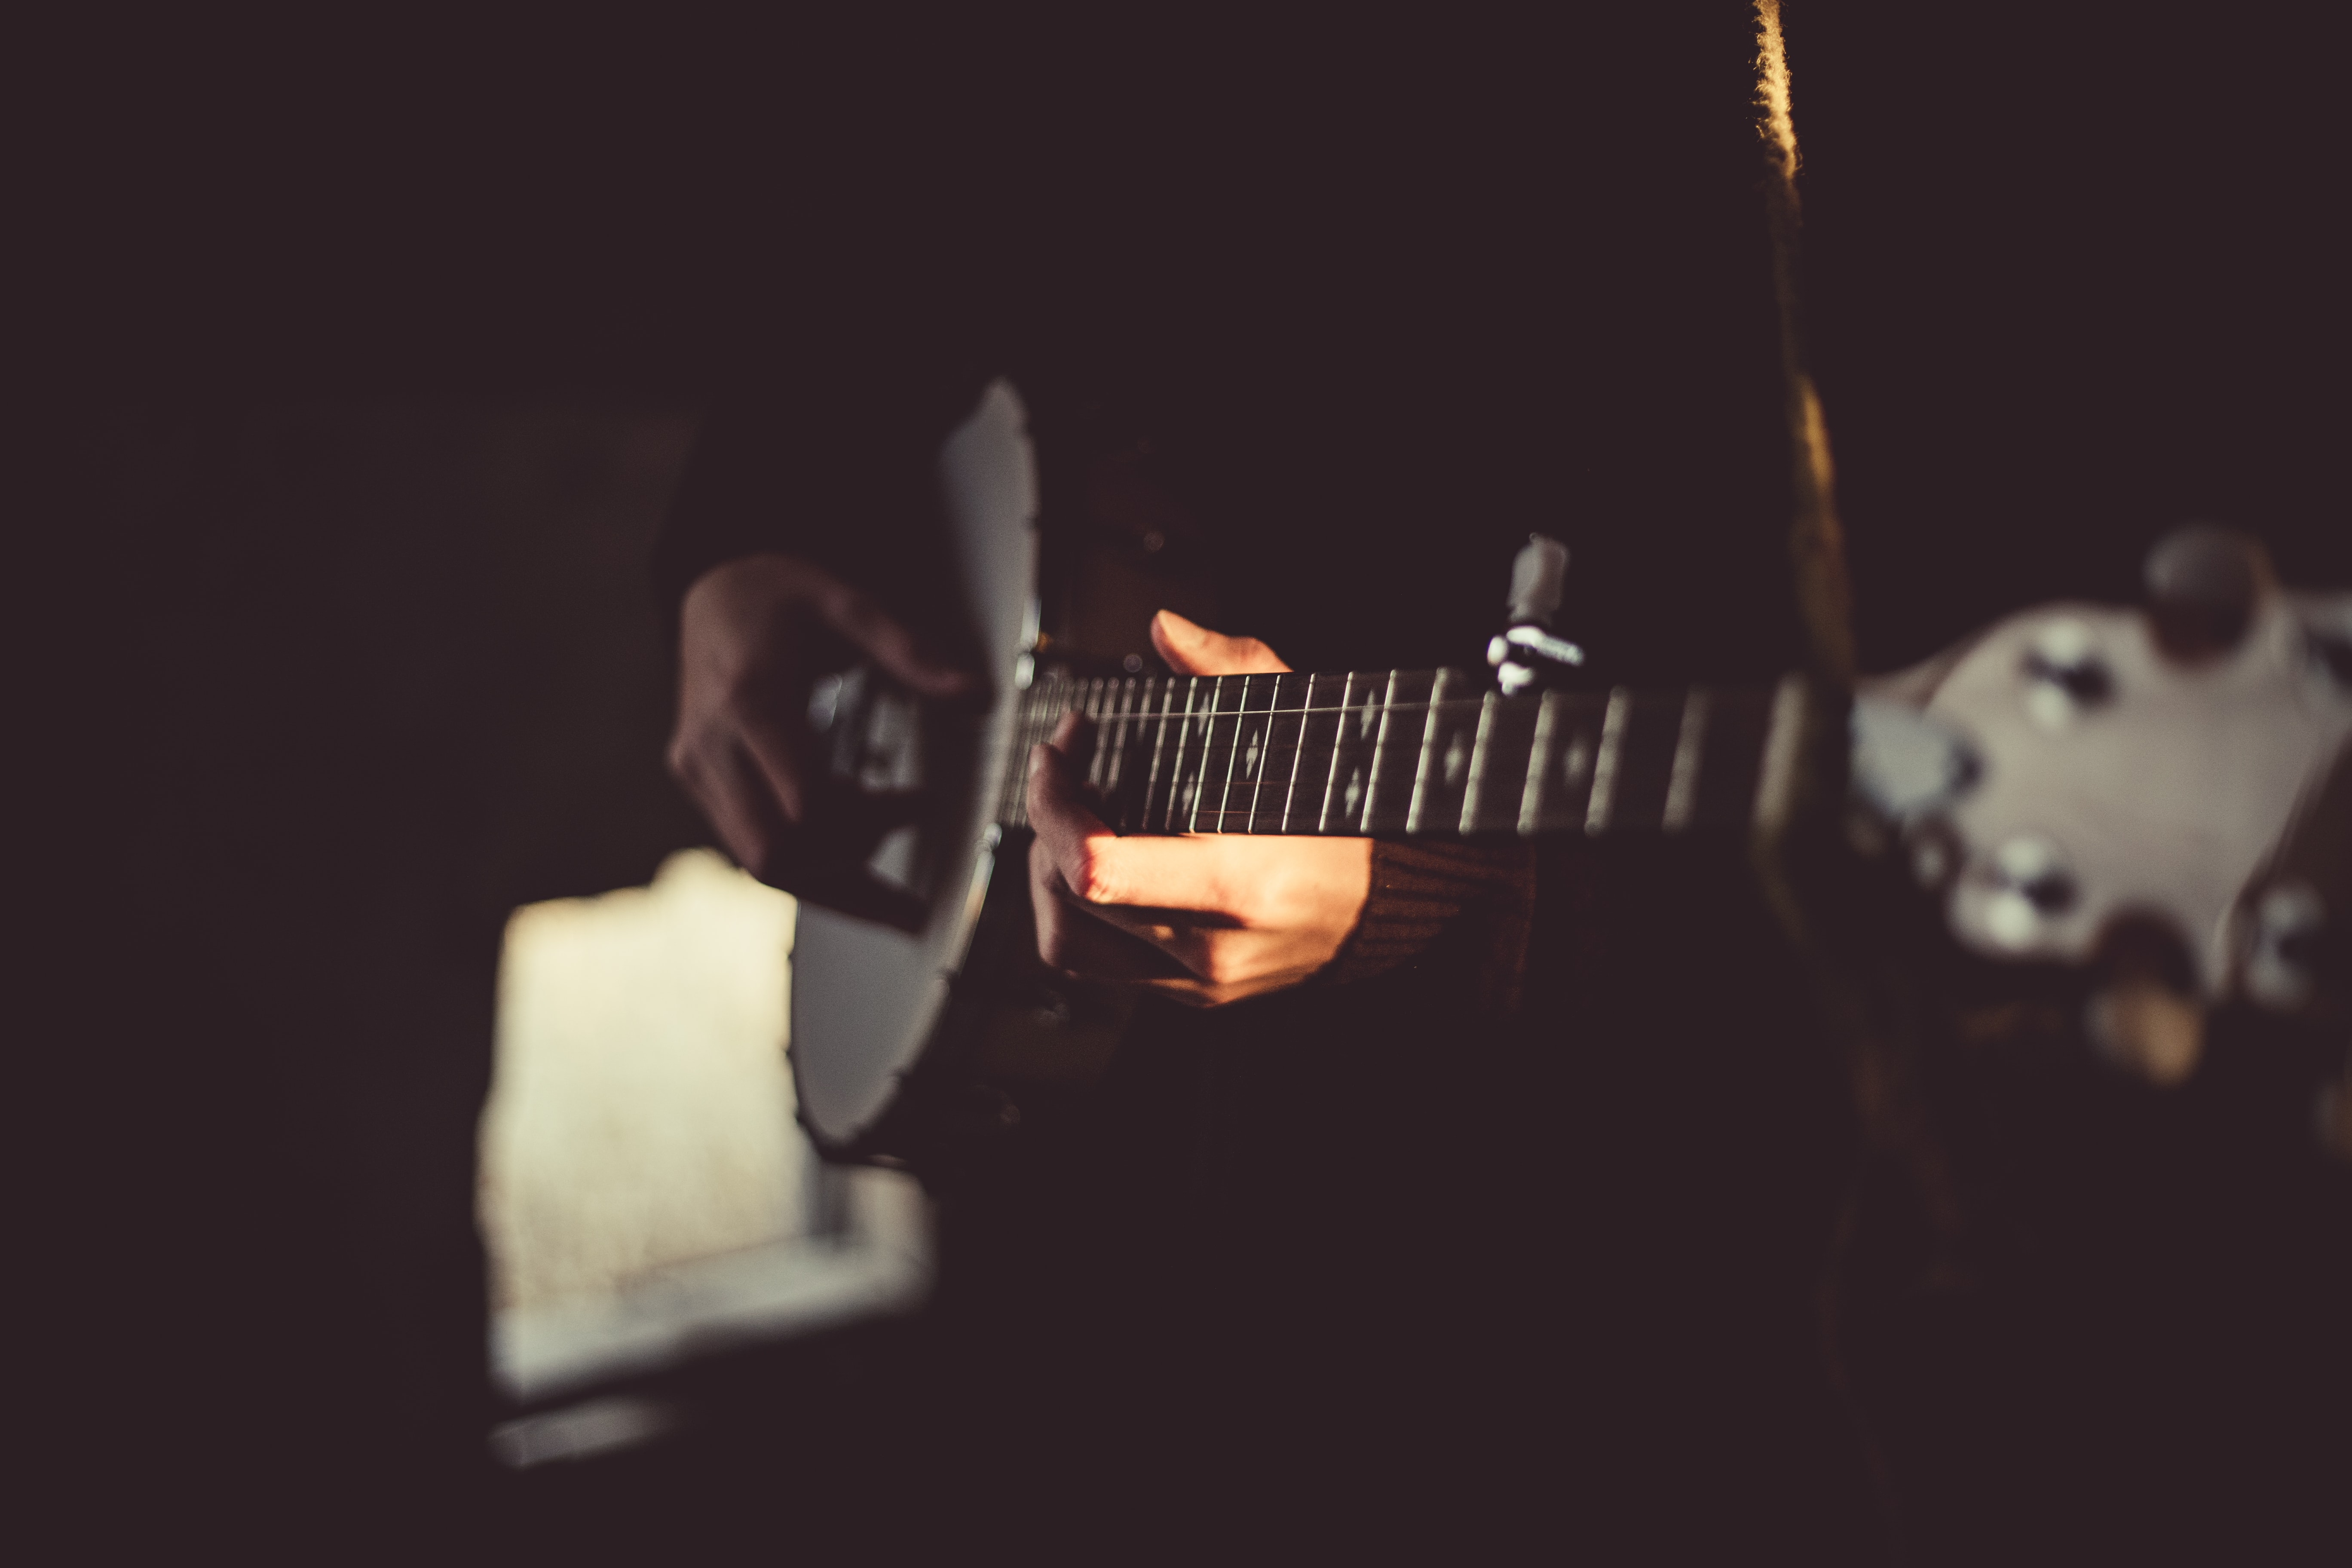 A dark, blurry shot of a person playing the banjo